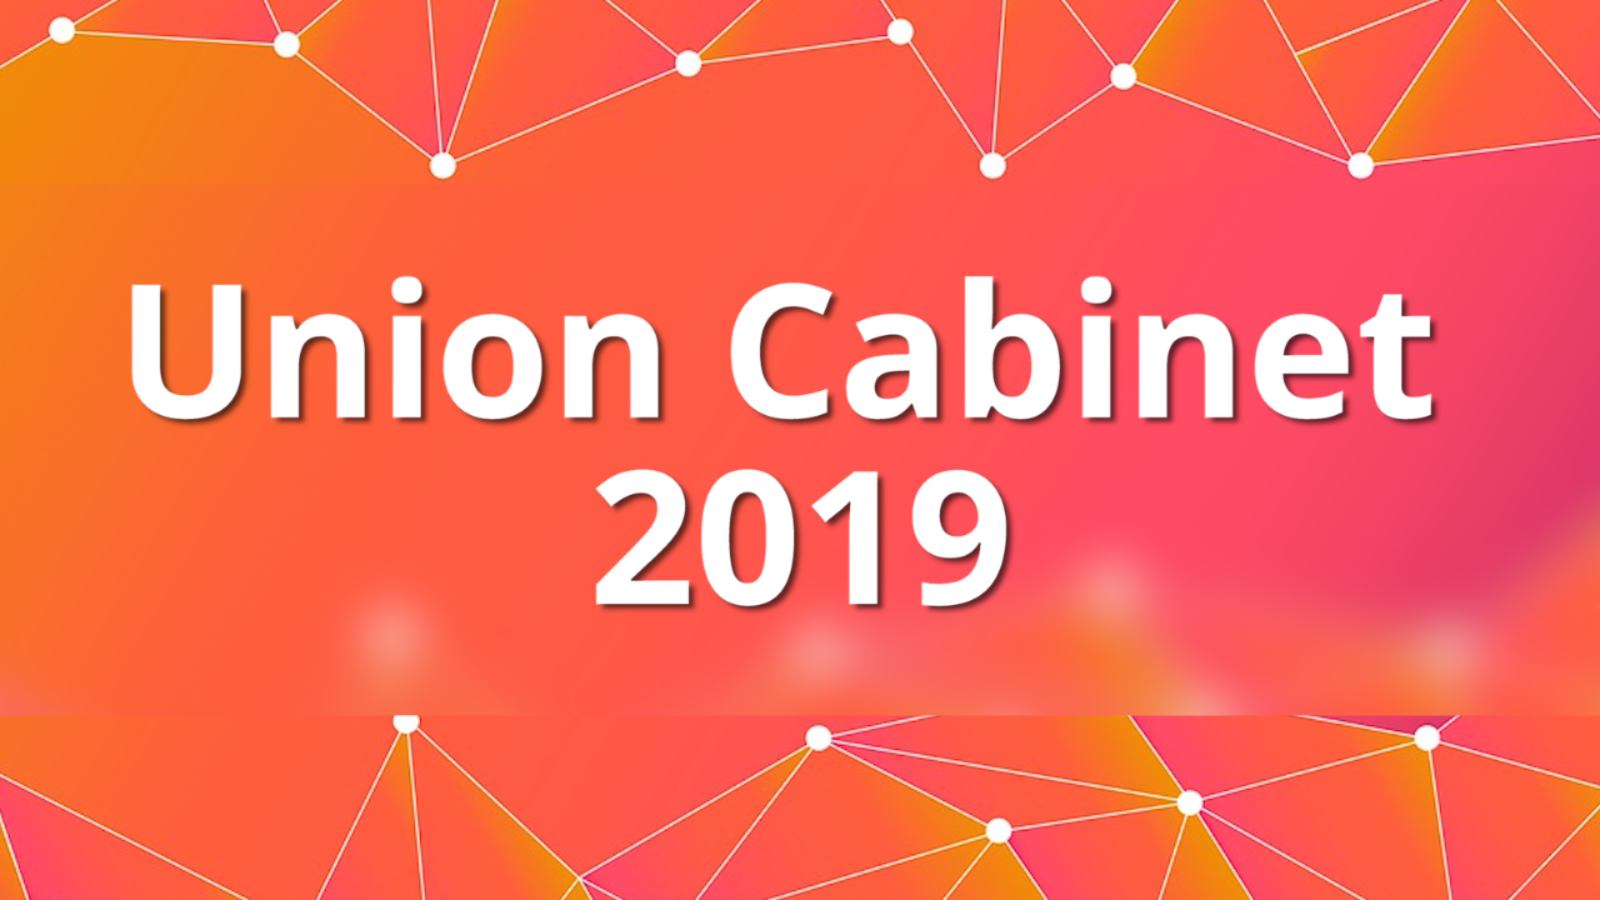 Union Cabinet 2019: These men and women will run India for the next 5 years